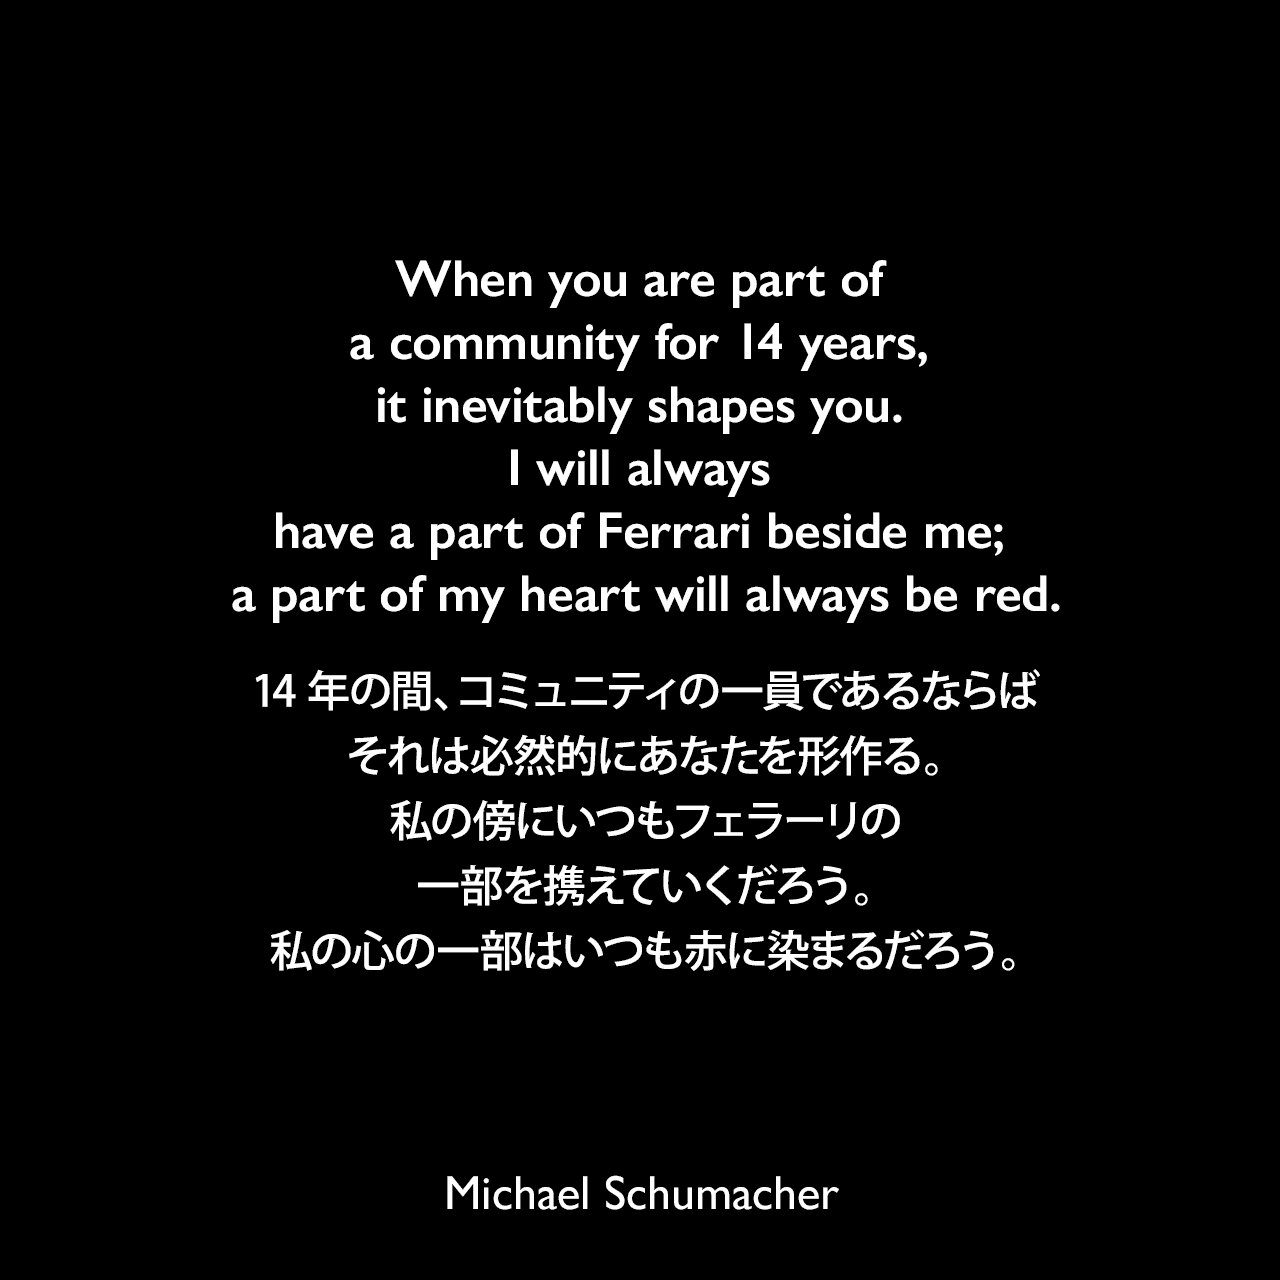 When you are part of a community for 14 years, it inevitably shapes you. I will always have a part of Ferrari beside me; a part of my heart will always be red.14年の間、コミュニティの一員であるならば、それは必然的にあなたを形作る。私の傍にいつもフェラーリの一部を携えていくだろう。私の心の一部はいつも赤に染まるだろう。Michael Schumacher